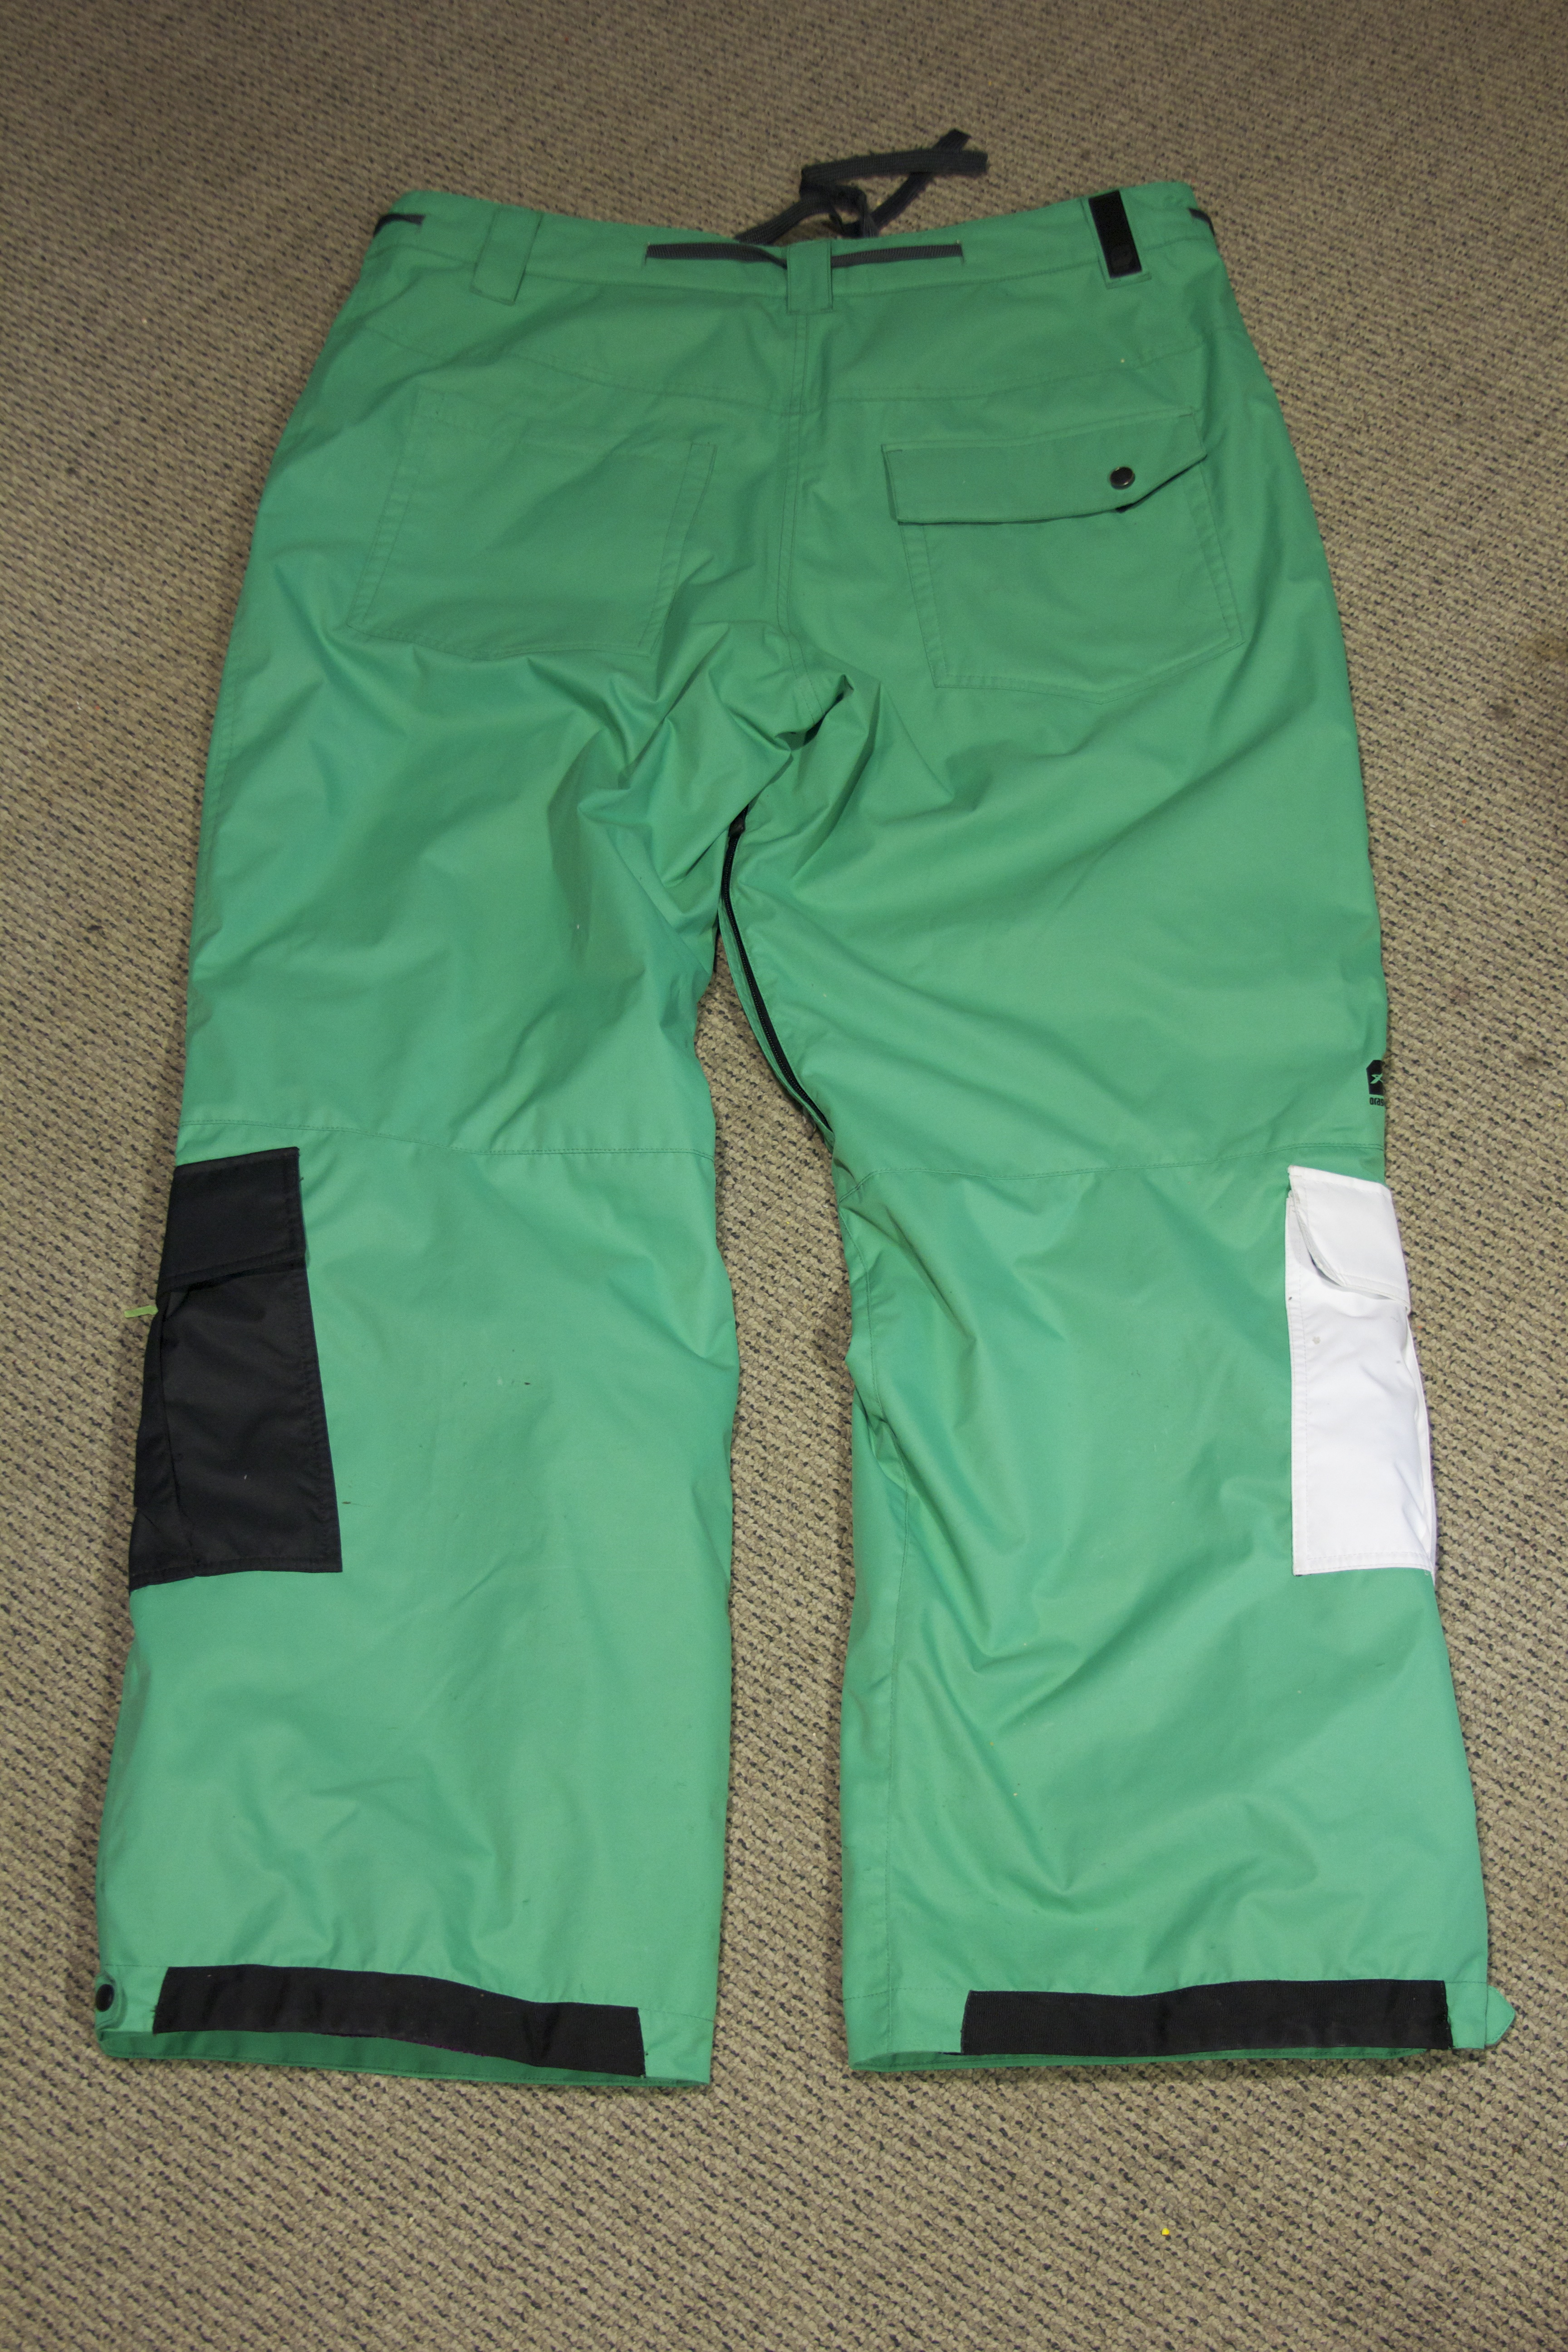 Barney pants for sale